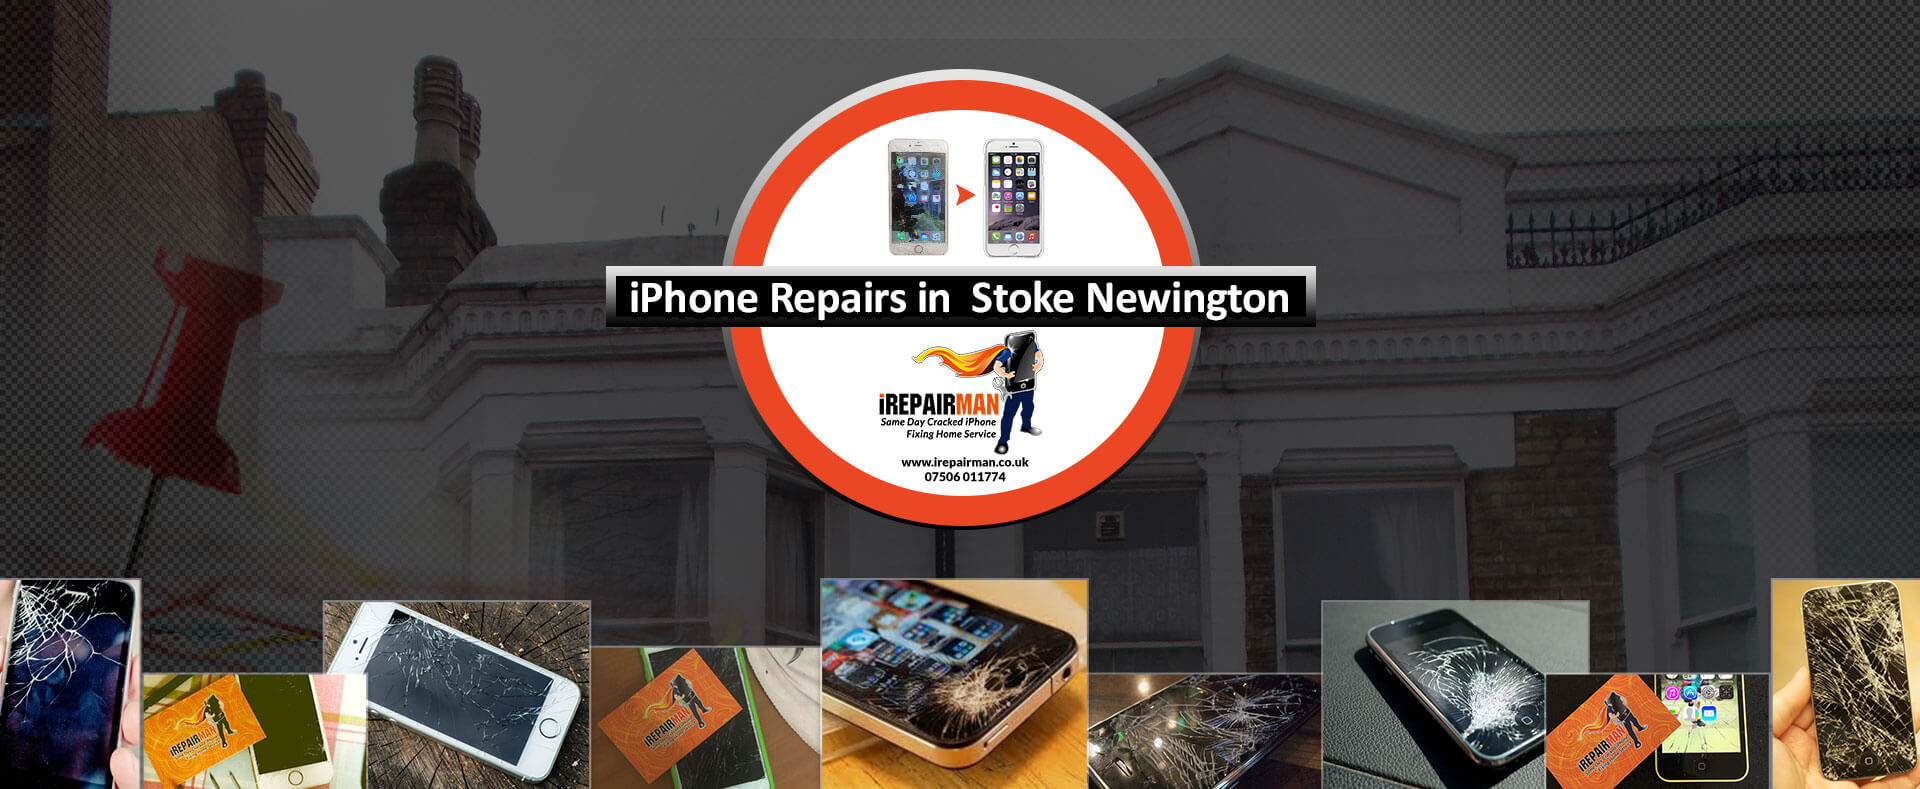 iPhone Repairs in Stoke Newington